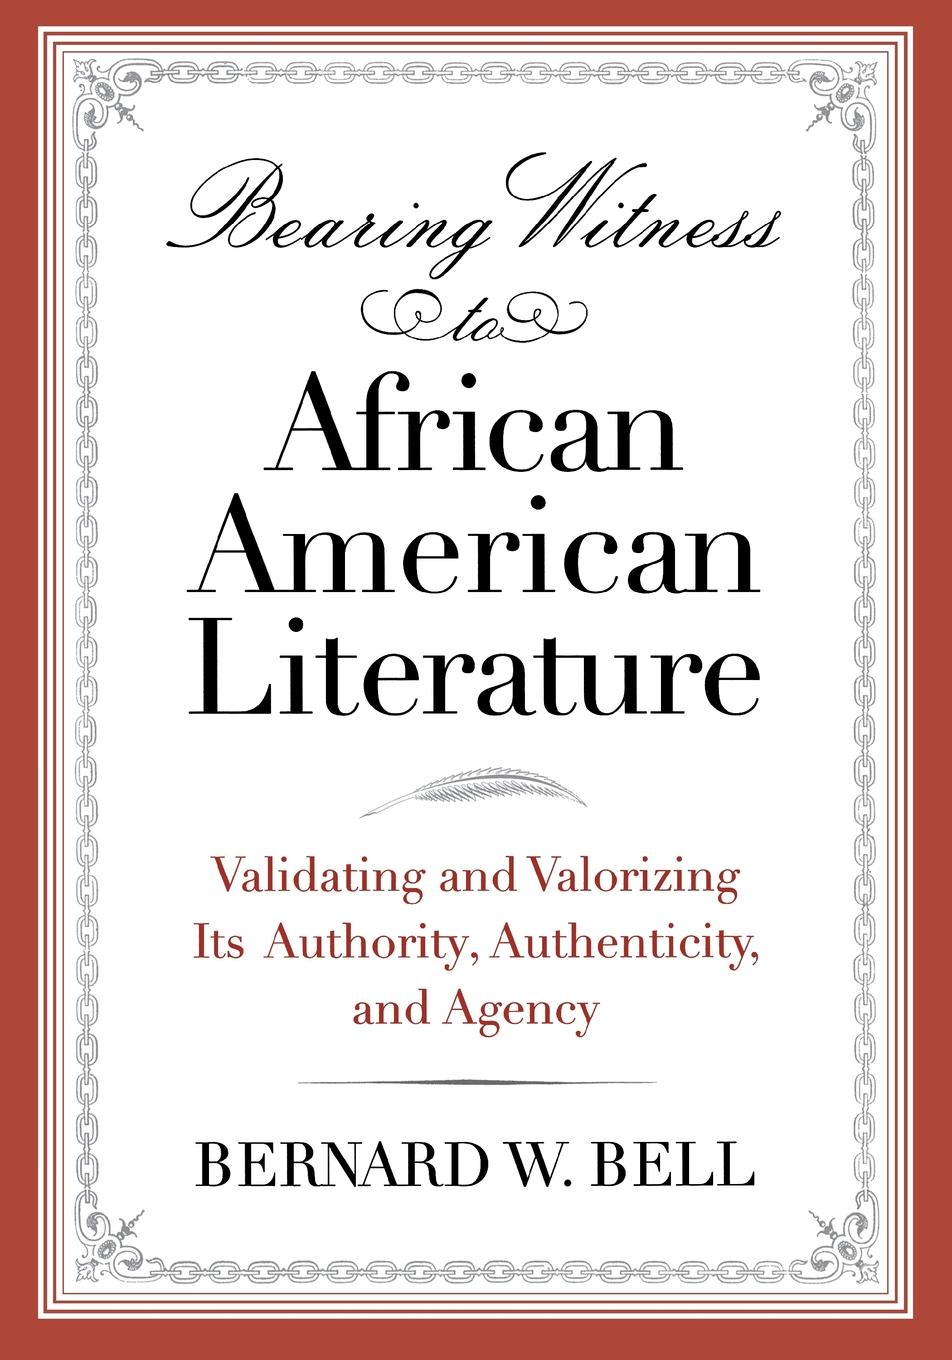 Bernard W Bell Bearing Witness to African American Literature. Validating and Valorizing Its Authority, Authenticity, and Agency цена